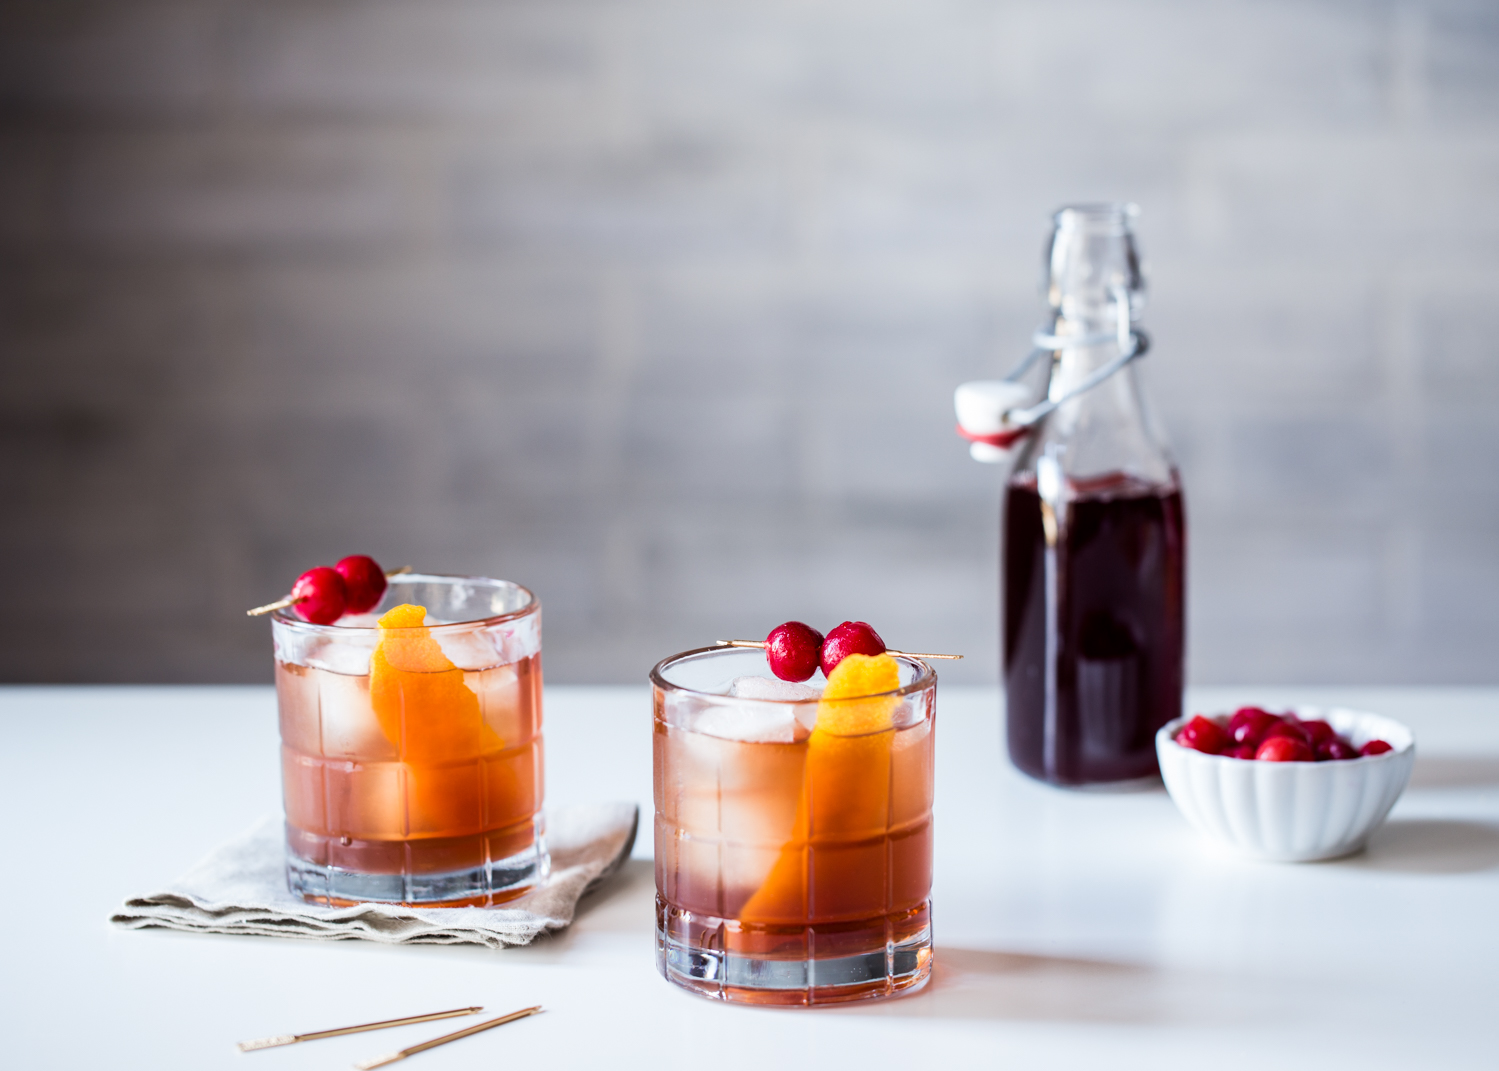 Valentine's cocktail never tasted so good with these Tart Cherry Old Fashioned